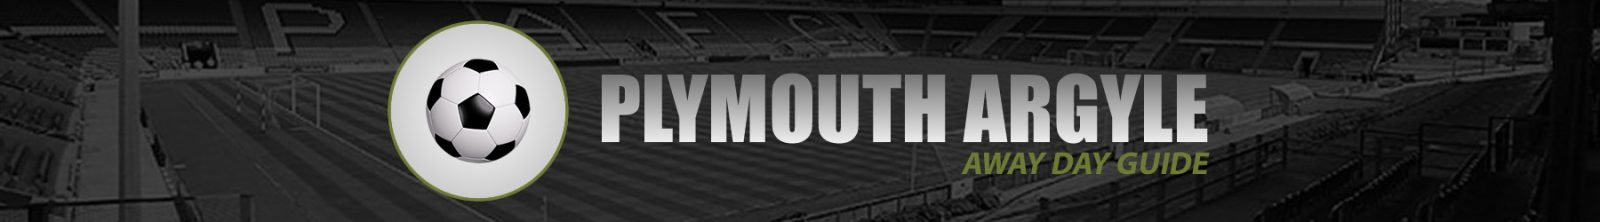 Plymouth Argyle Away